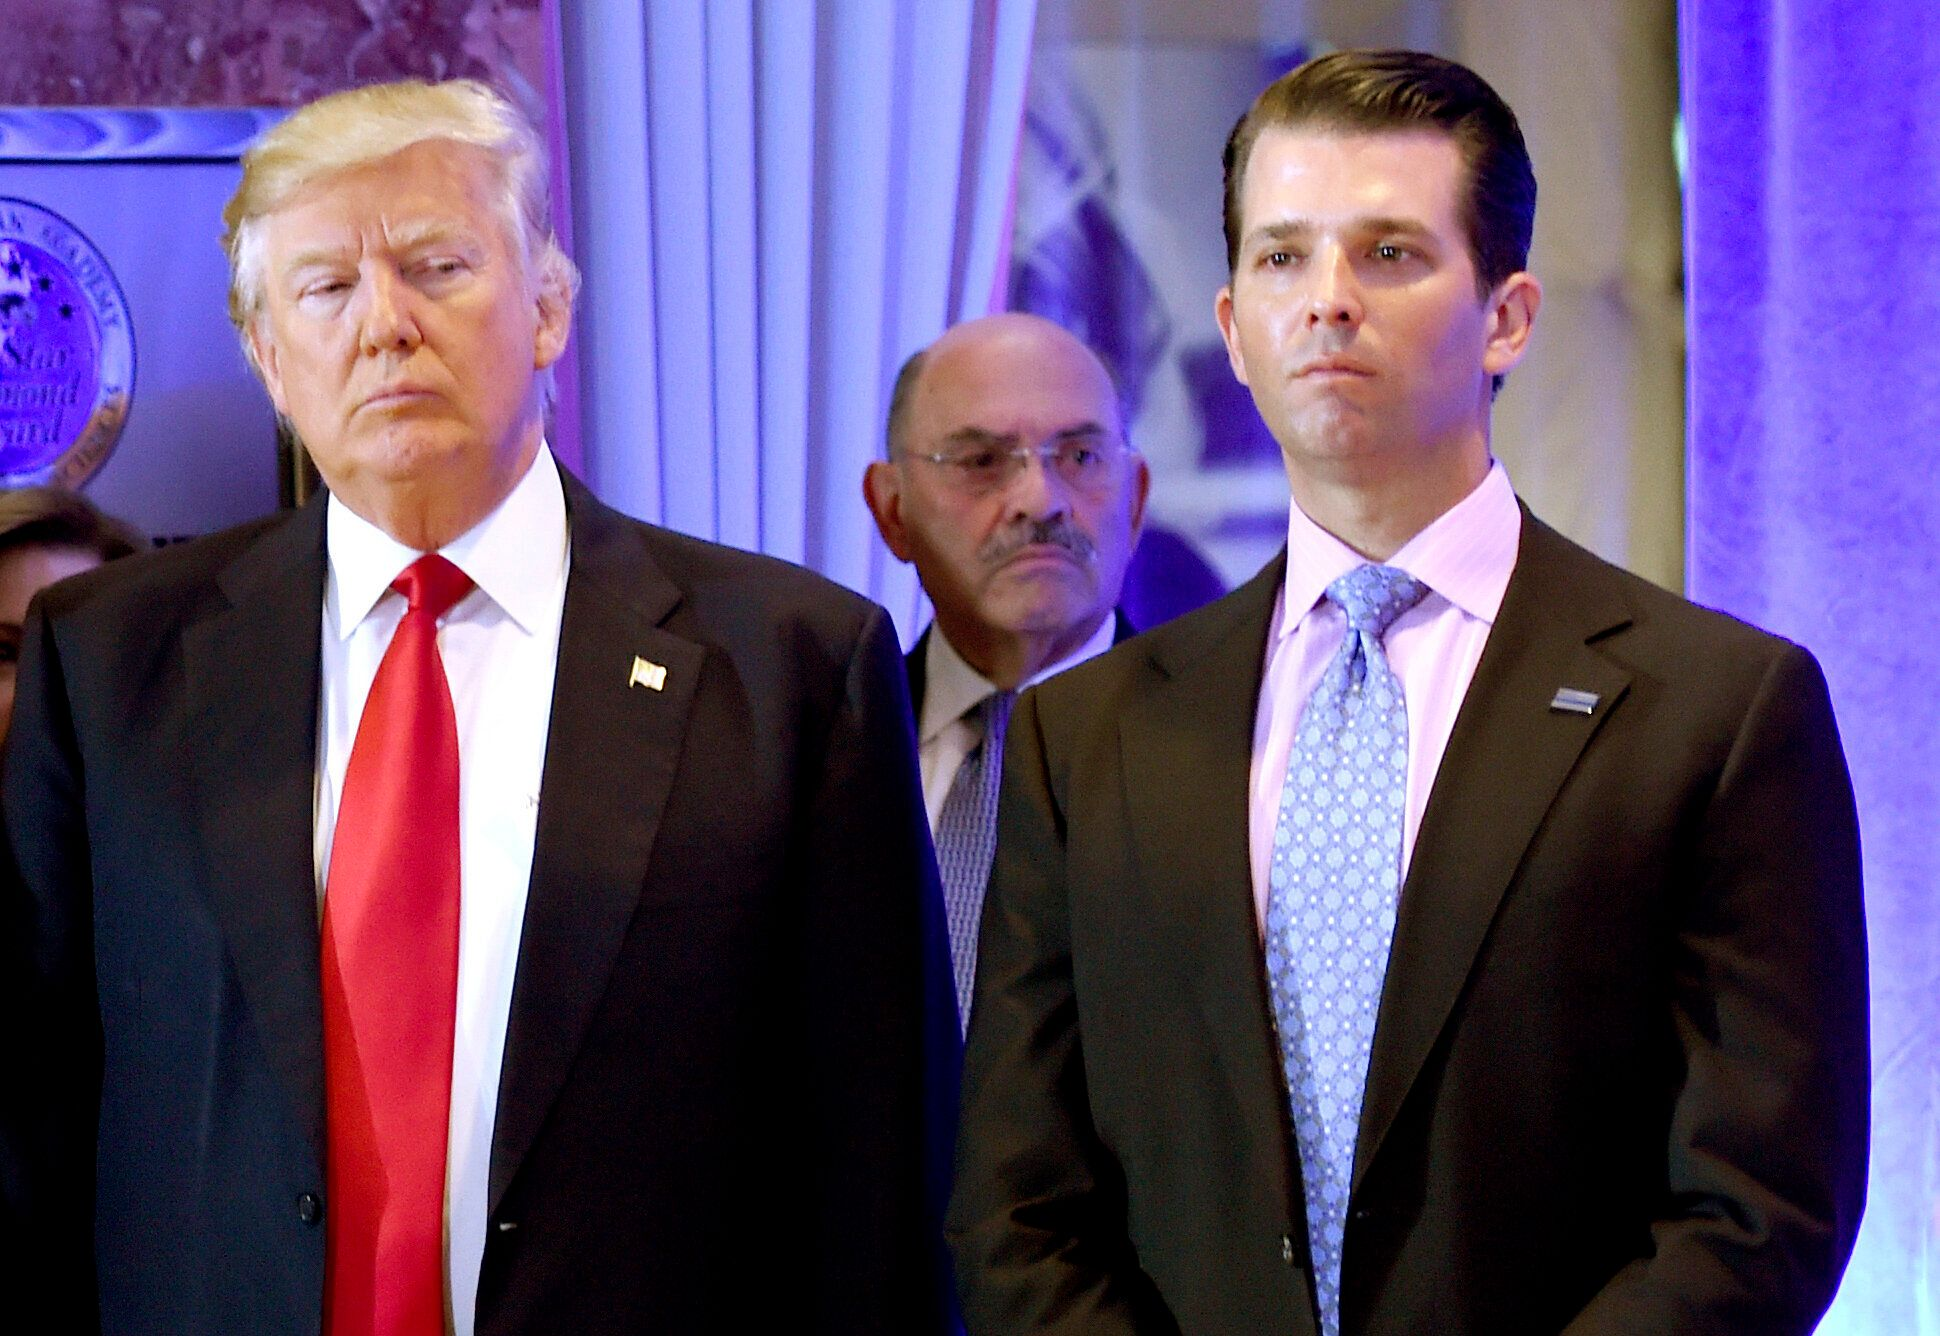 Former President Donald Trump pictured with Allen Weisselberg (center) and his son, Donald Trump Jr., in 2017.